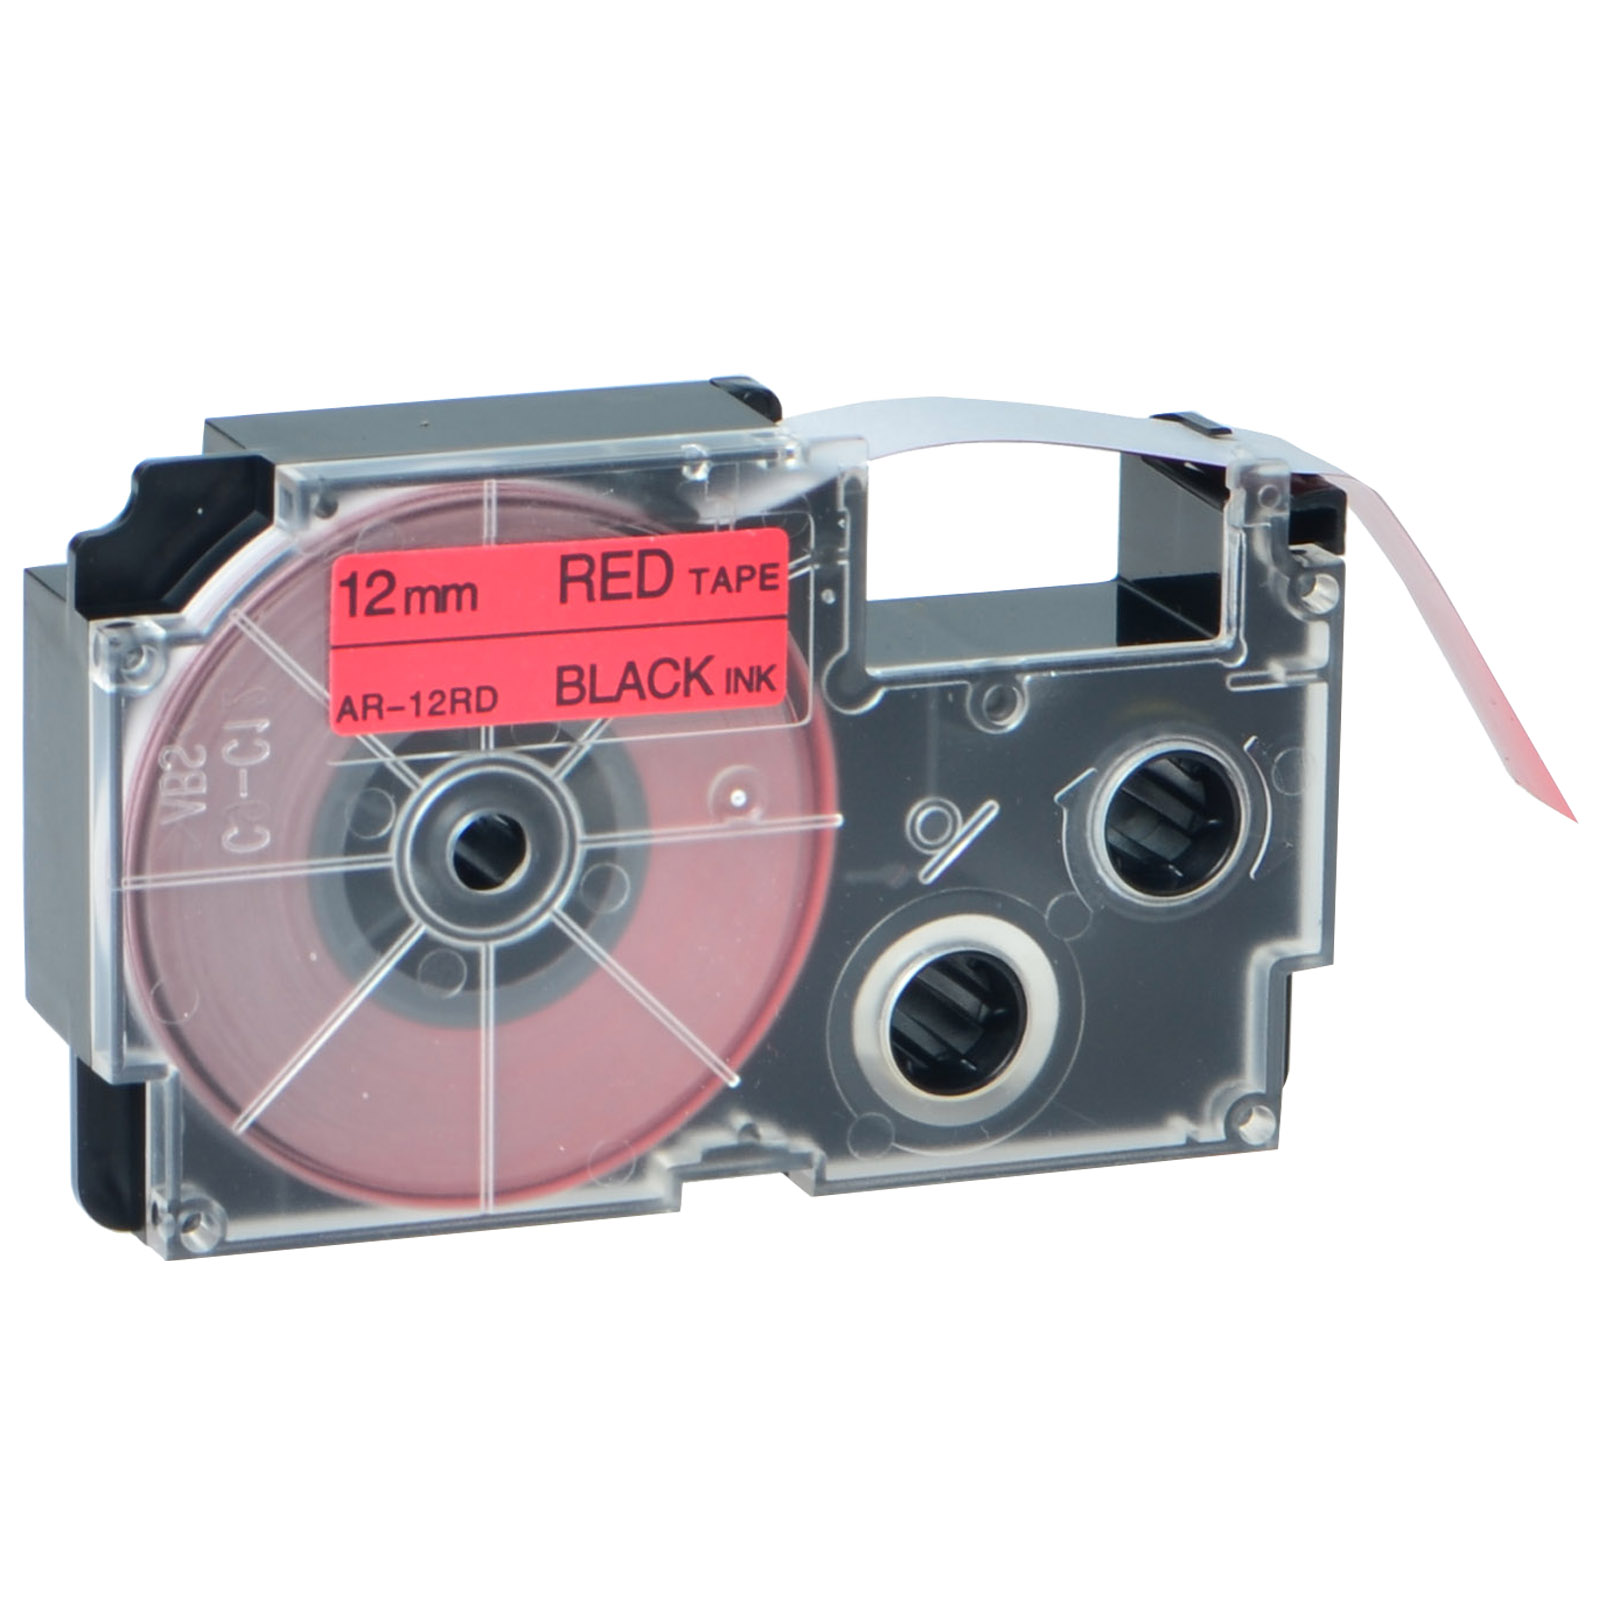 NEW FOR HP 15-ay015dx 15-ay016nr 15-ay008cy 15-ay008ds CPU FAN with Grease